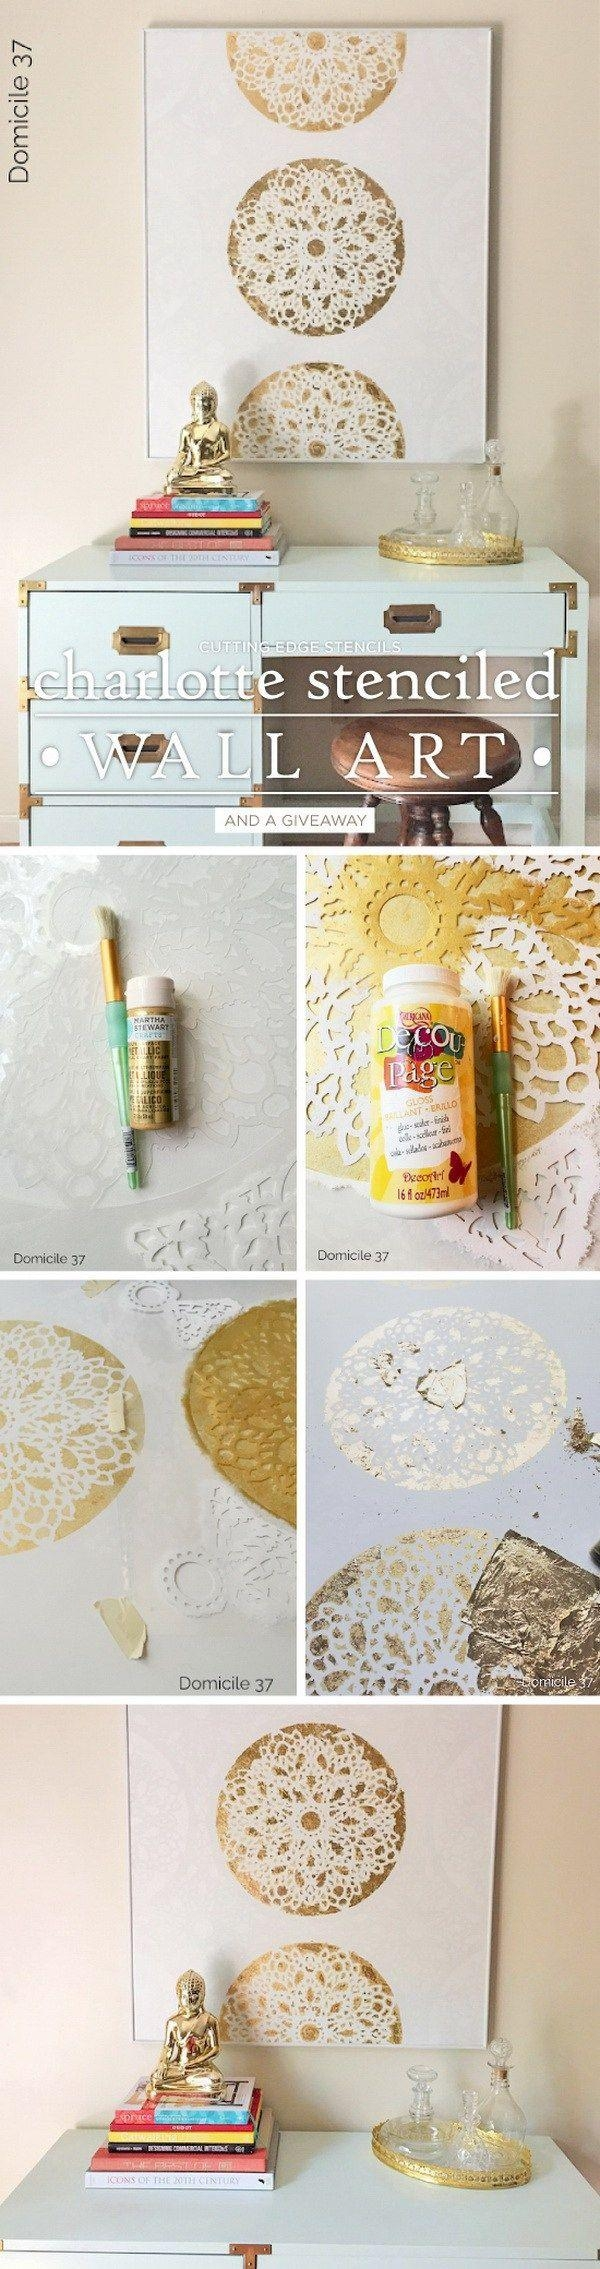 Best 25+ Fabric Wall Art Ideas On Pinterest | Large Wall Art Within Styrofoam Wall Art (View 15 of 20)